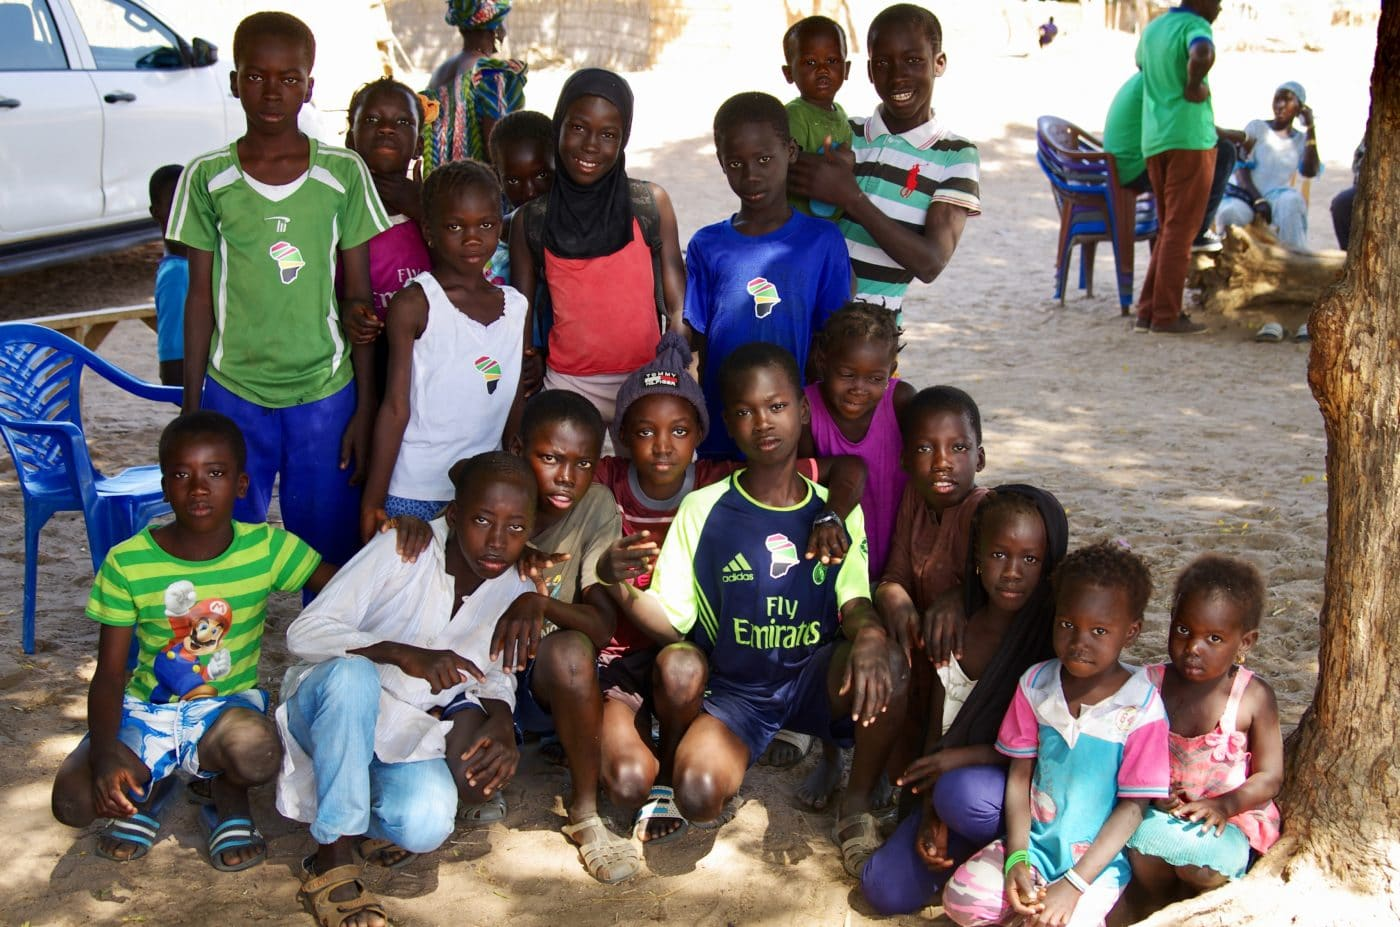 Group of youth in Senegal